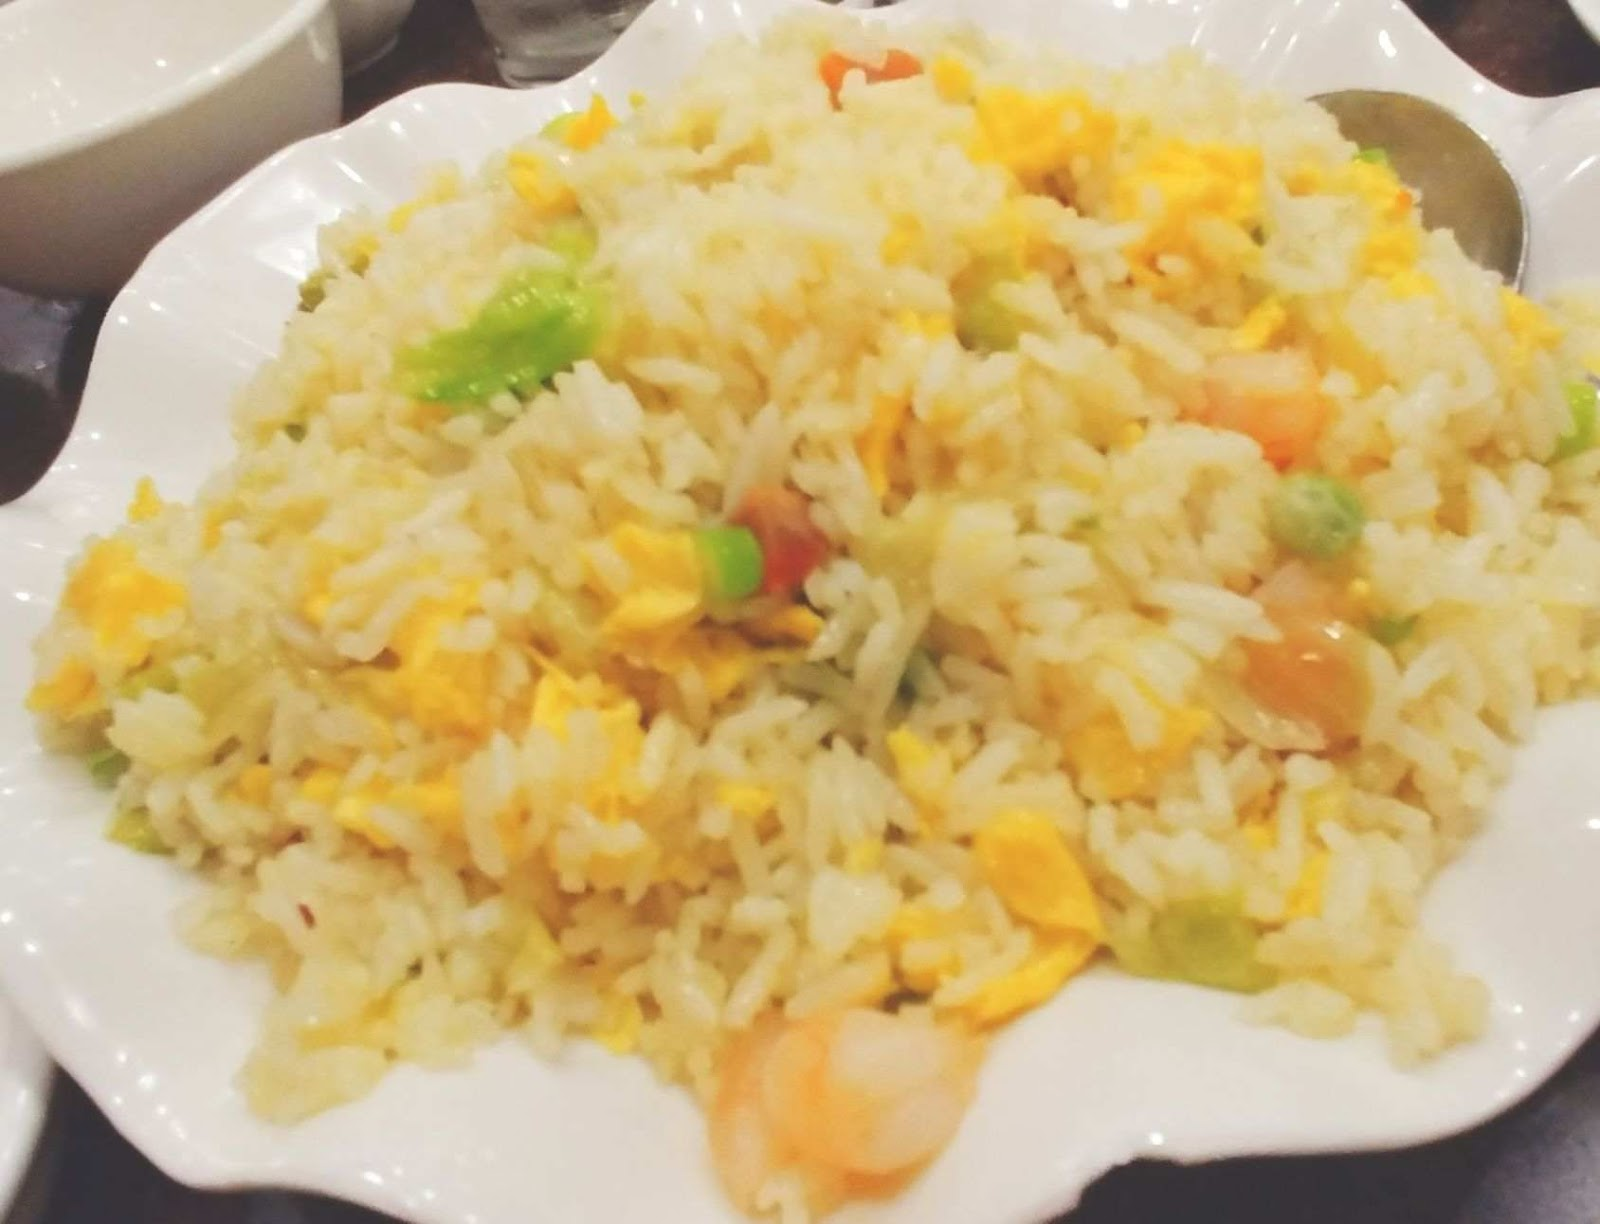 King Chef Dimsum Kitchen's yang chow fried rice